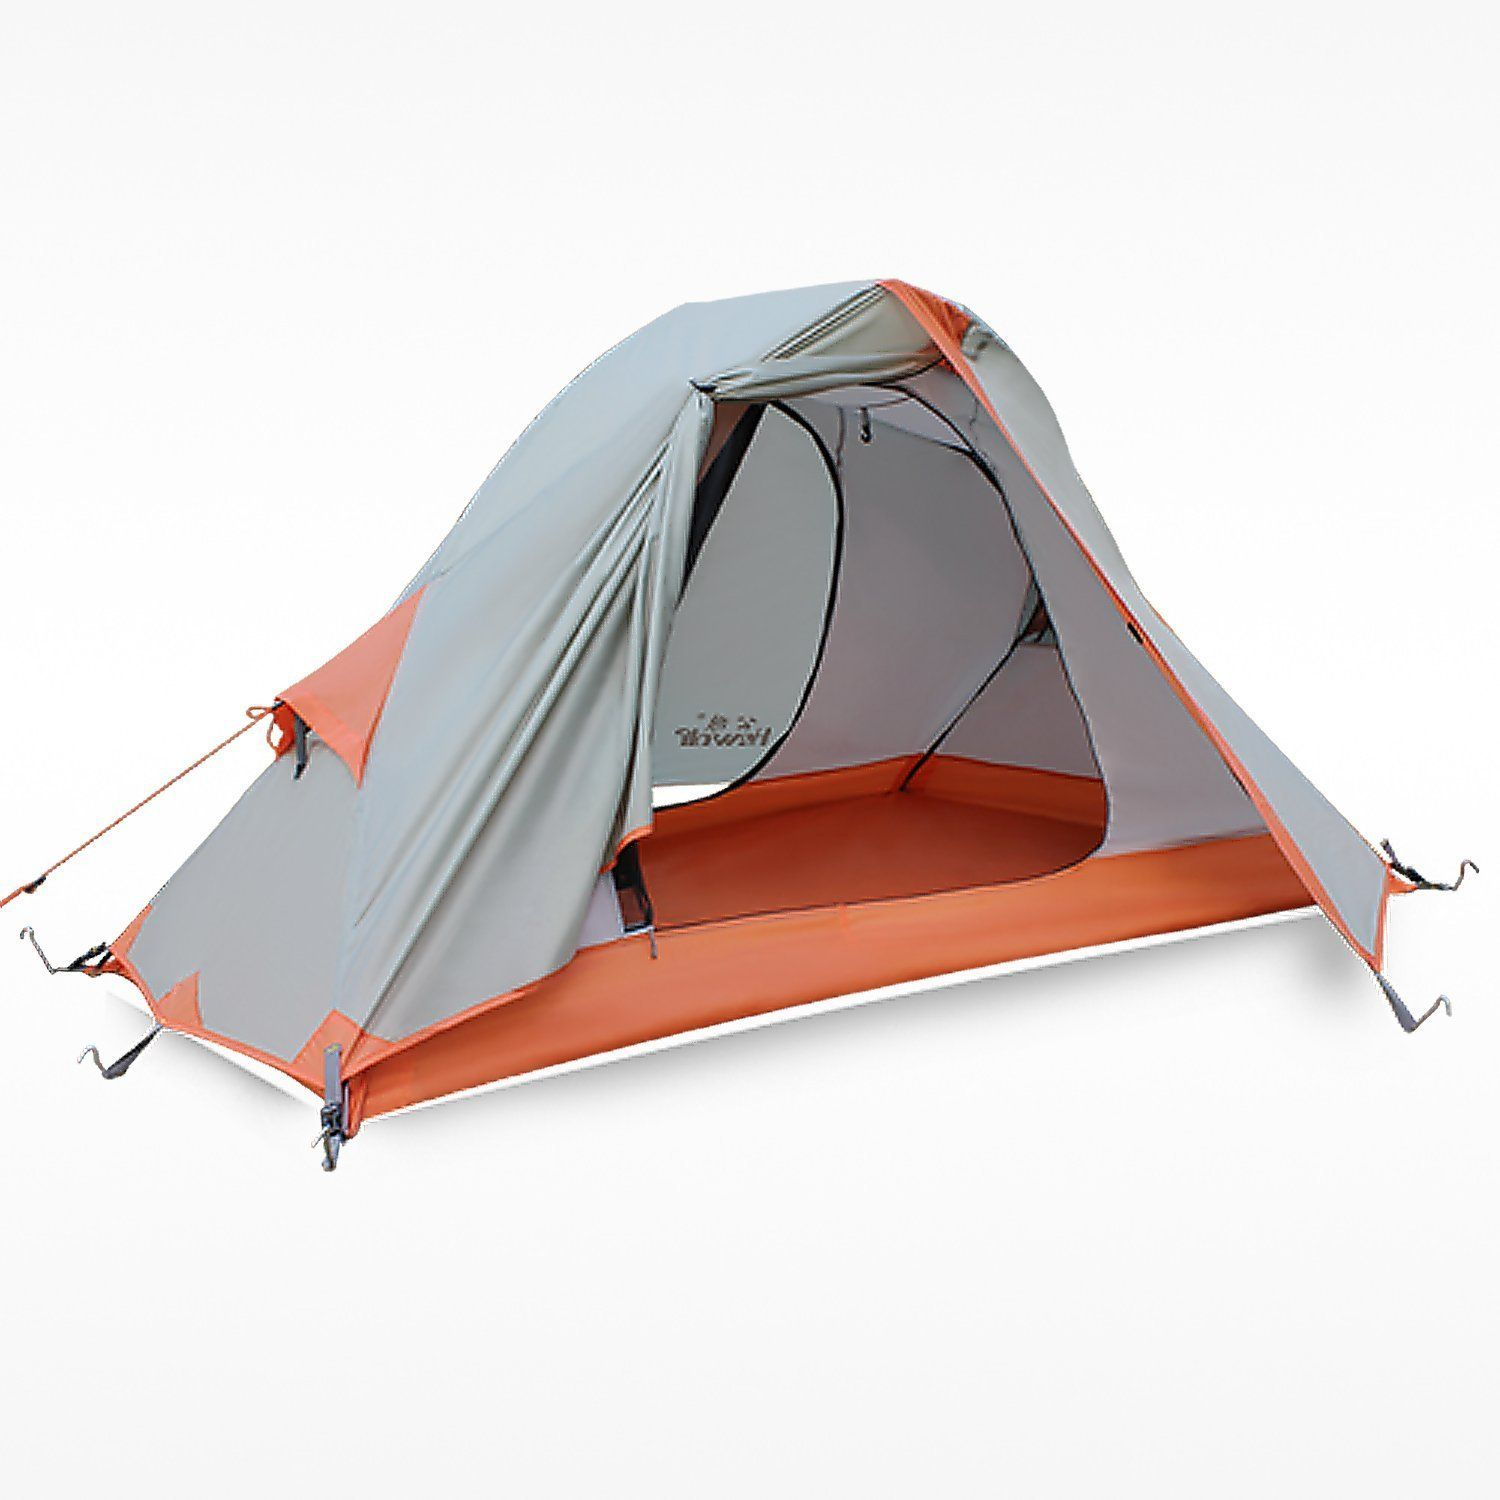 Hewolf Outdoor Waterproof 4 Seasons 1 Man Tent For Trekking Riding Hiking Camping Travel Khaki Check Out This Great Item Sh Tent Hiking Tent Waterproof Tent